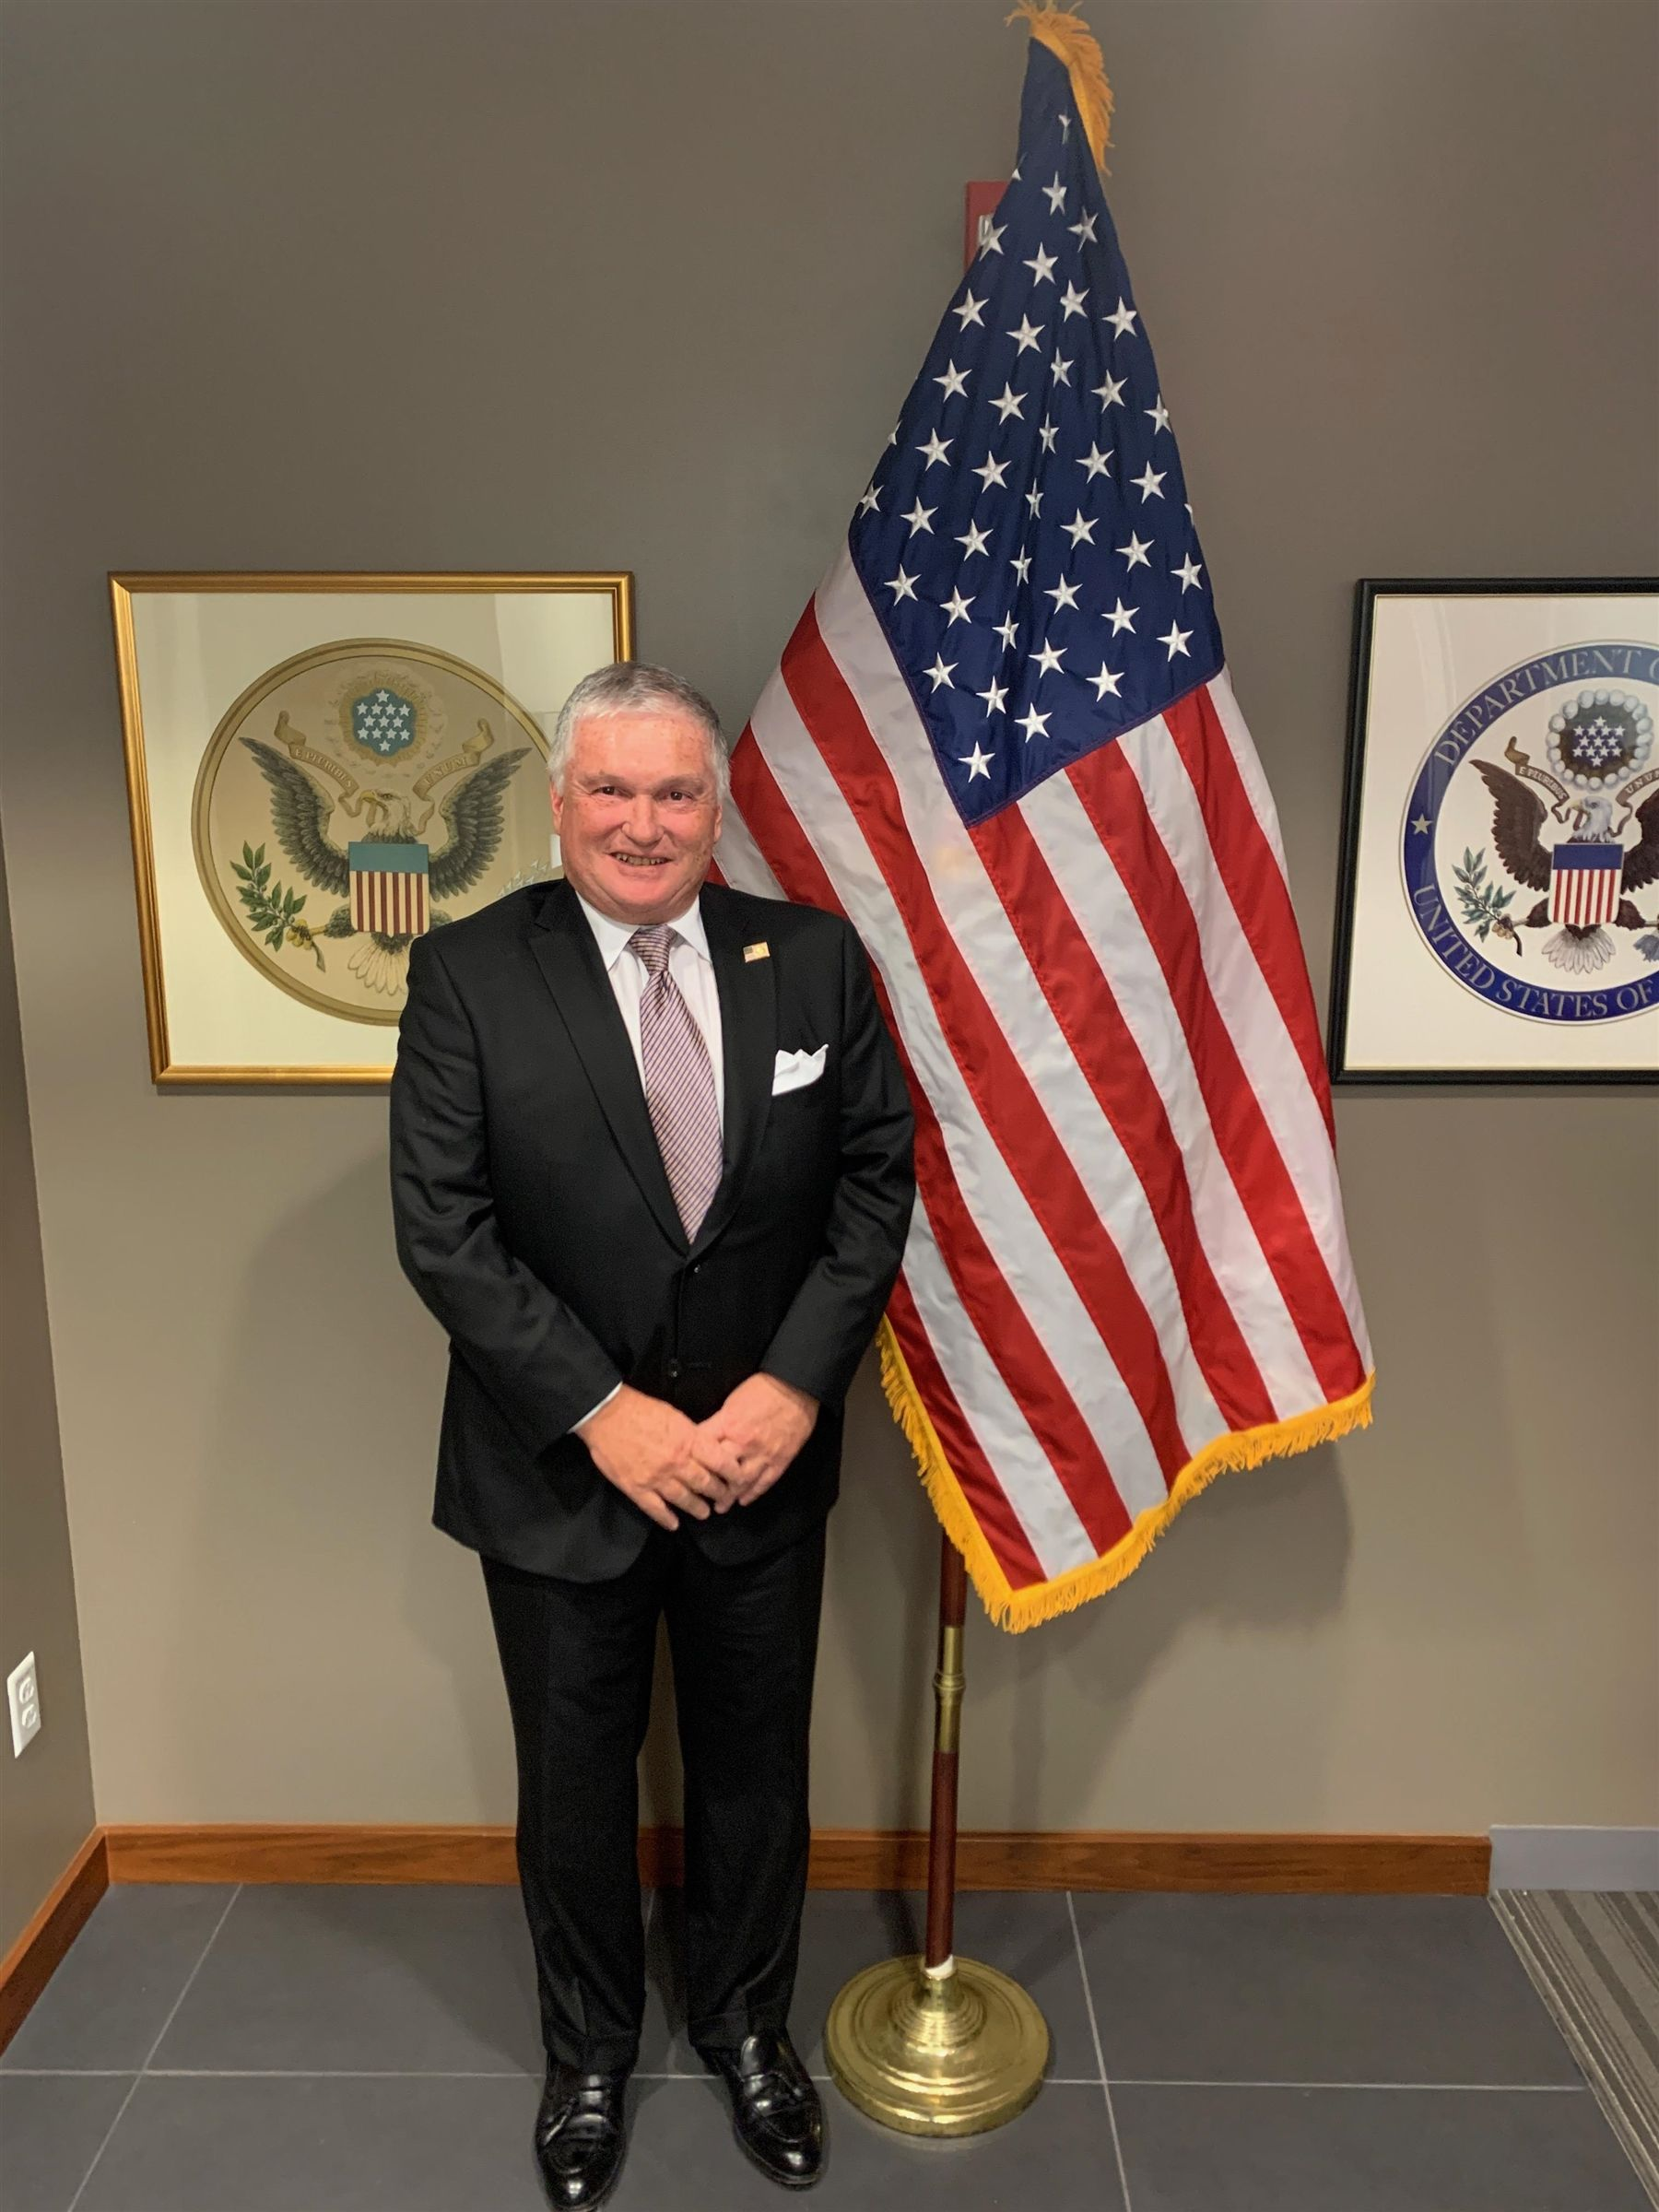 U.S. Ambassador to Romania